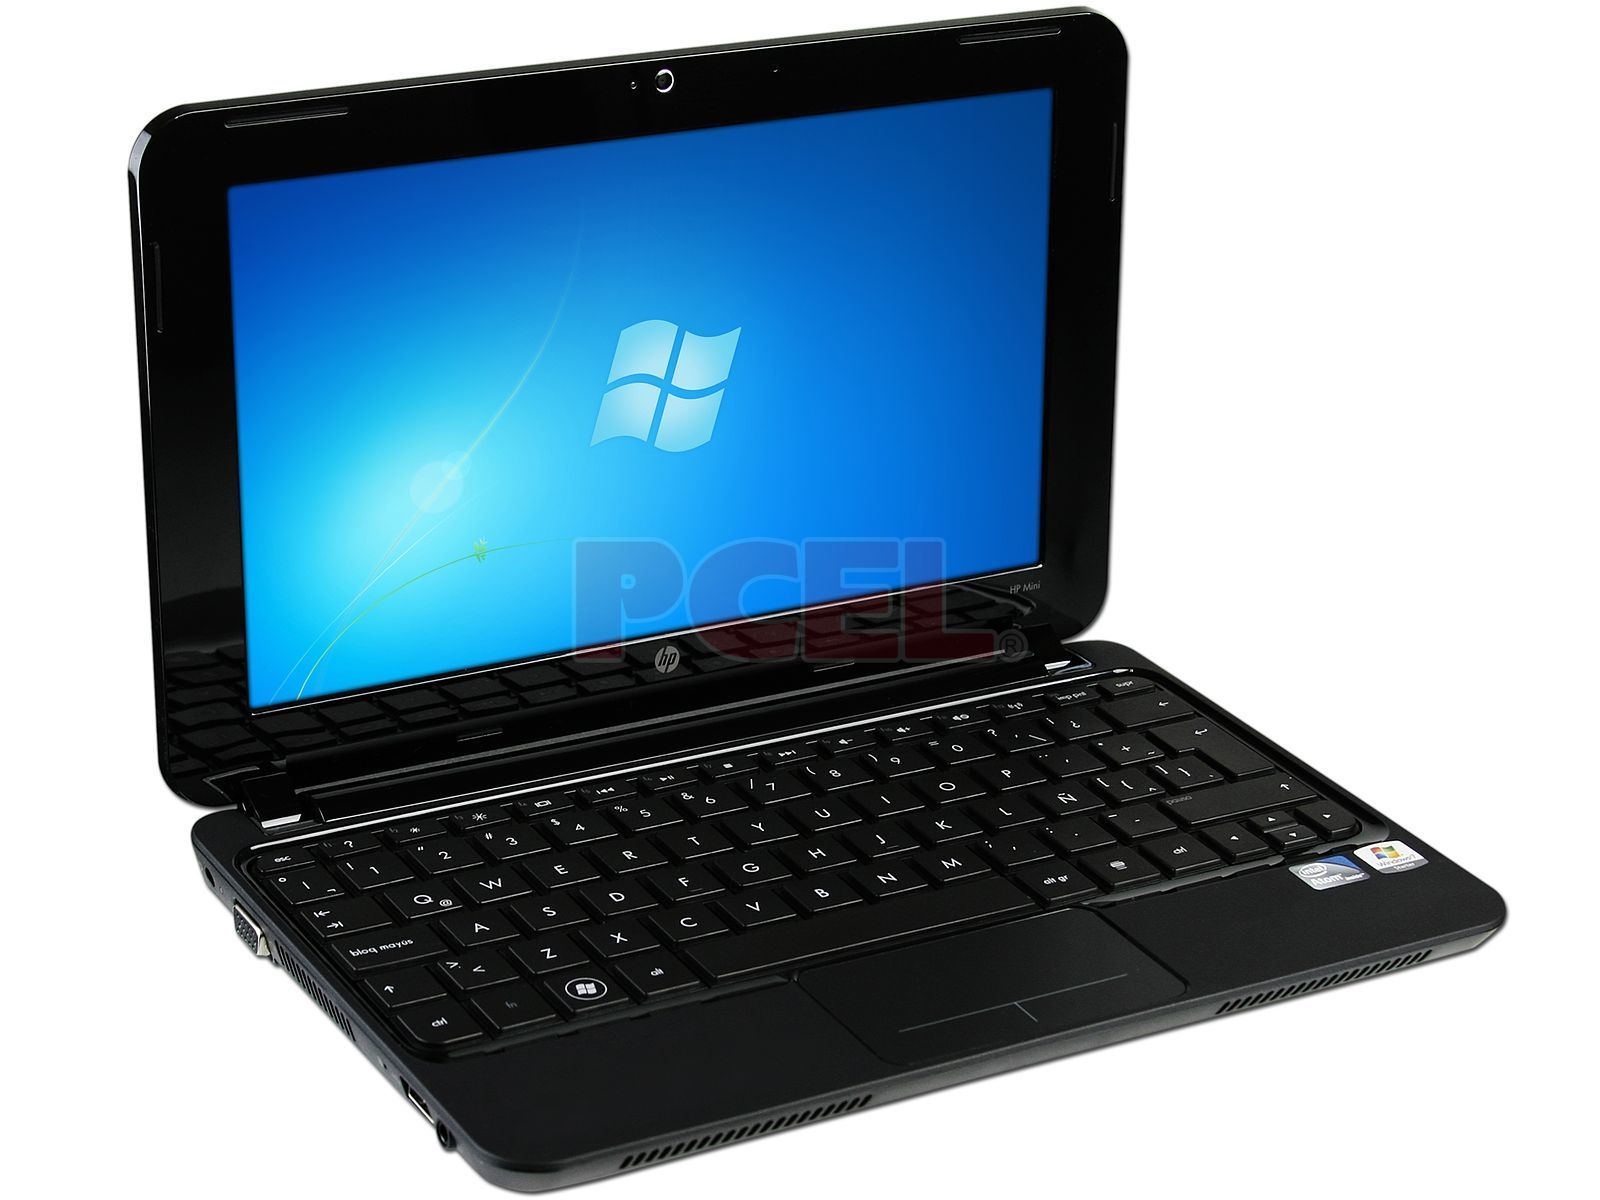 HP MINI 210-1020EG NOTEBOOK RALINK WLAN WINDOWS 7 X64 DRIVER DOWNLOAD